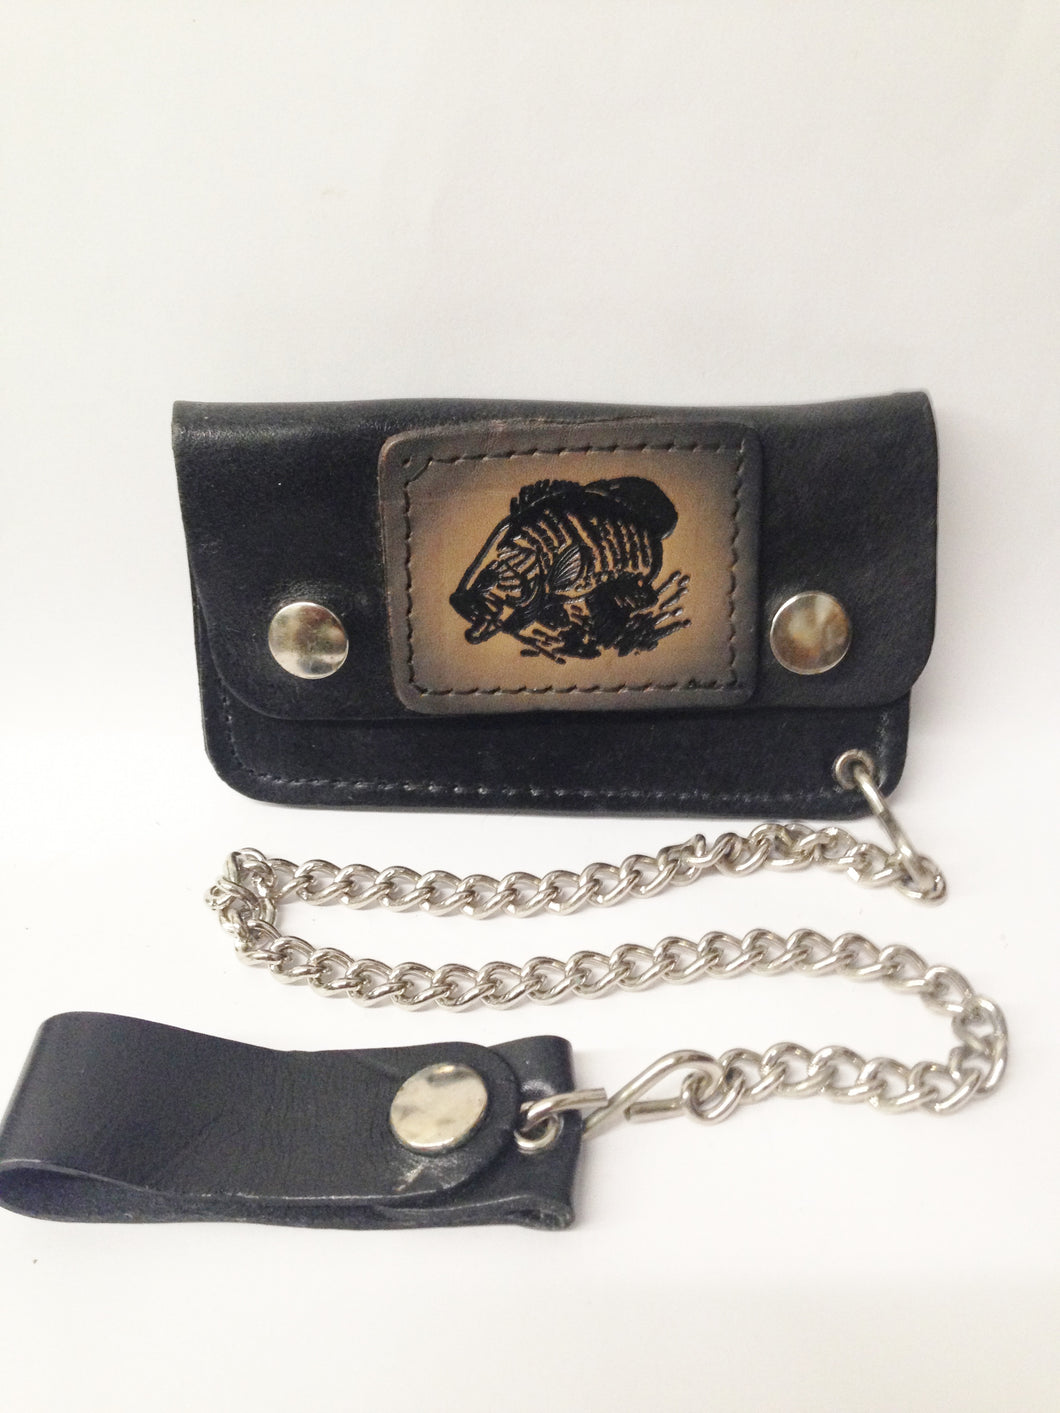 Black Leather Biker Chain Wallet W/ Black, Gray and Tan Bass Fish www.hersandhistreasures.com/collections/wallets